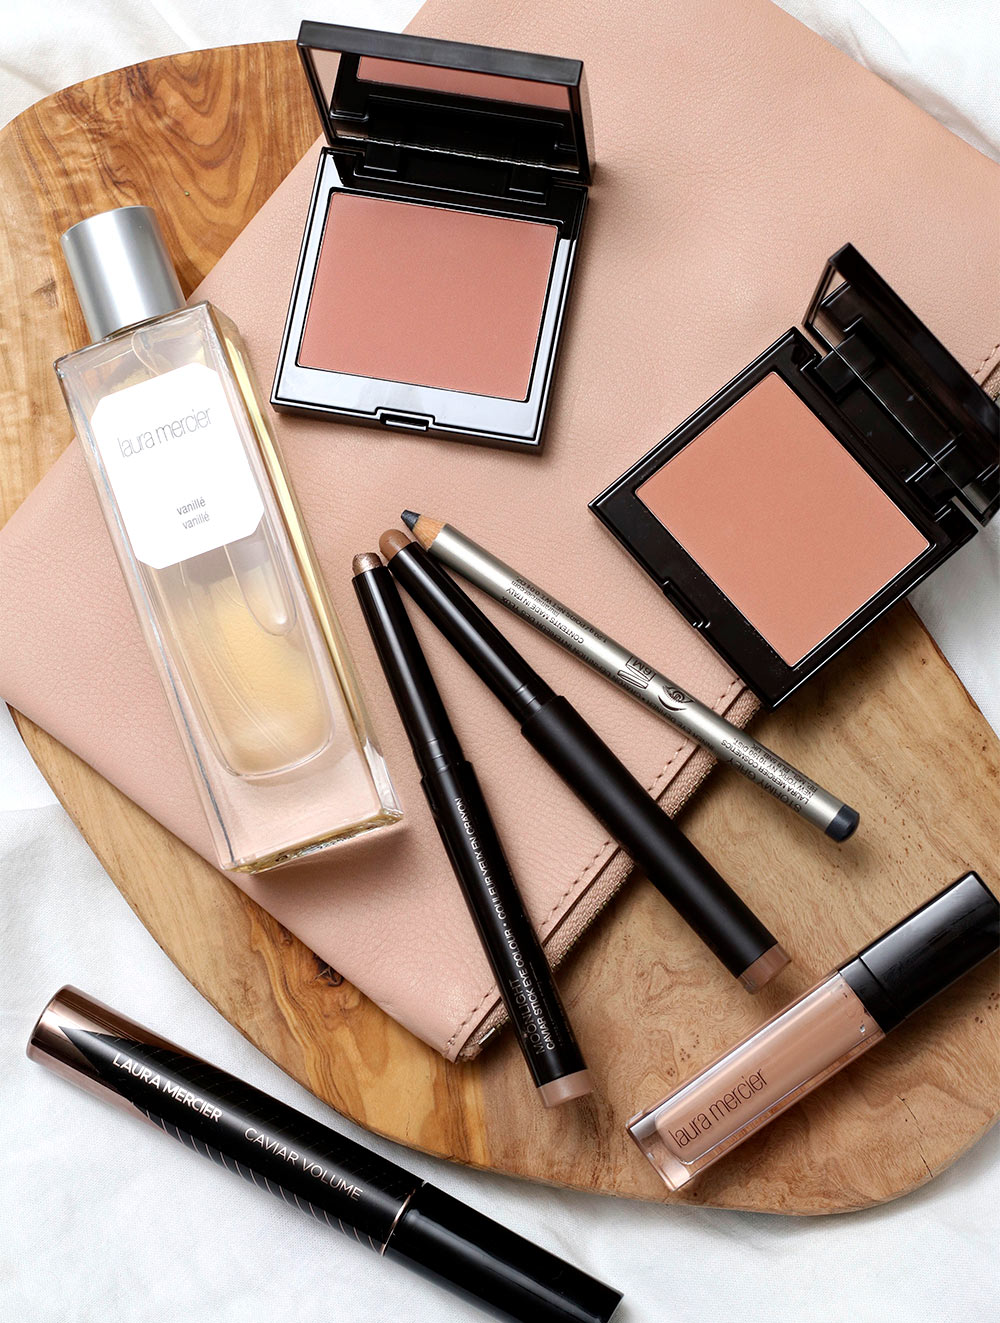 laura mercier 2021 flat lay